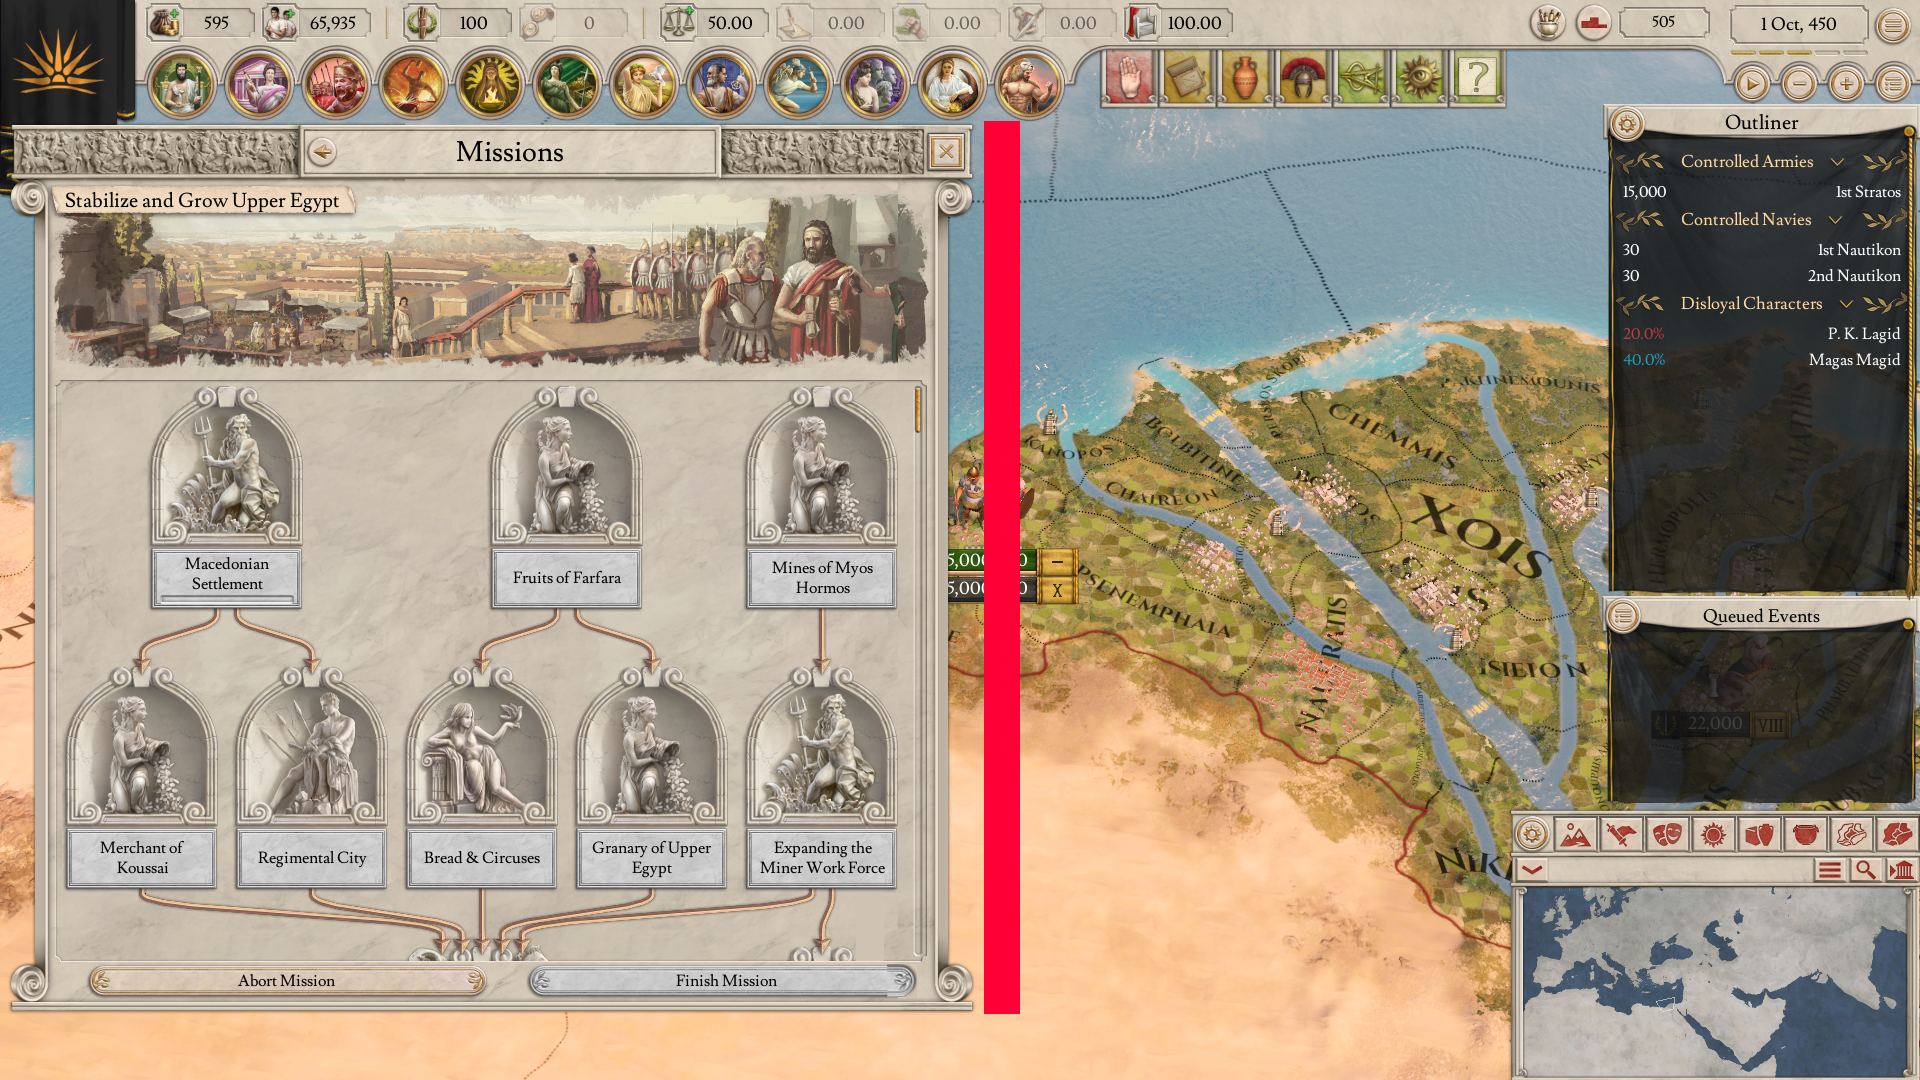 Missions-Egypt-1-Done.png